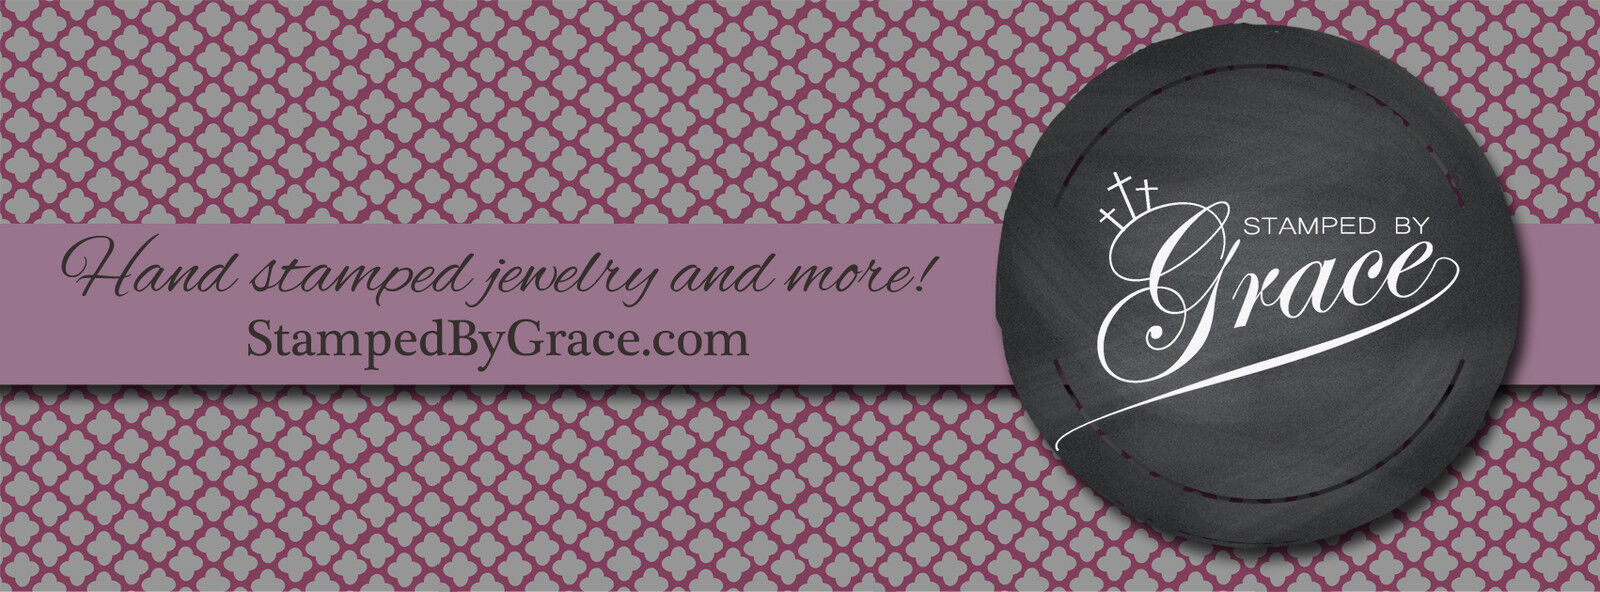 Stamped By Grace